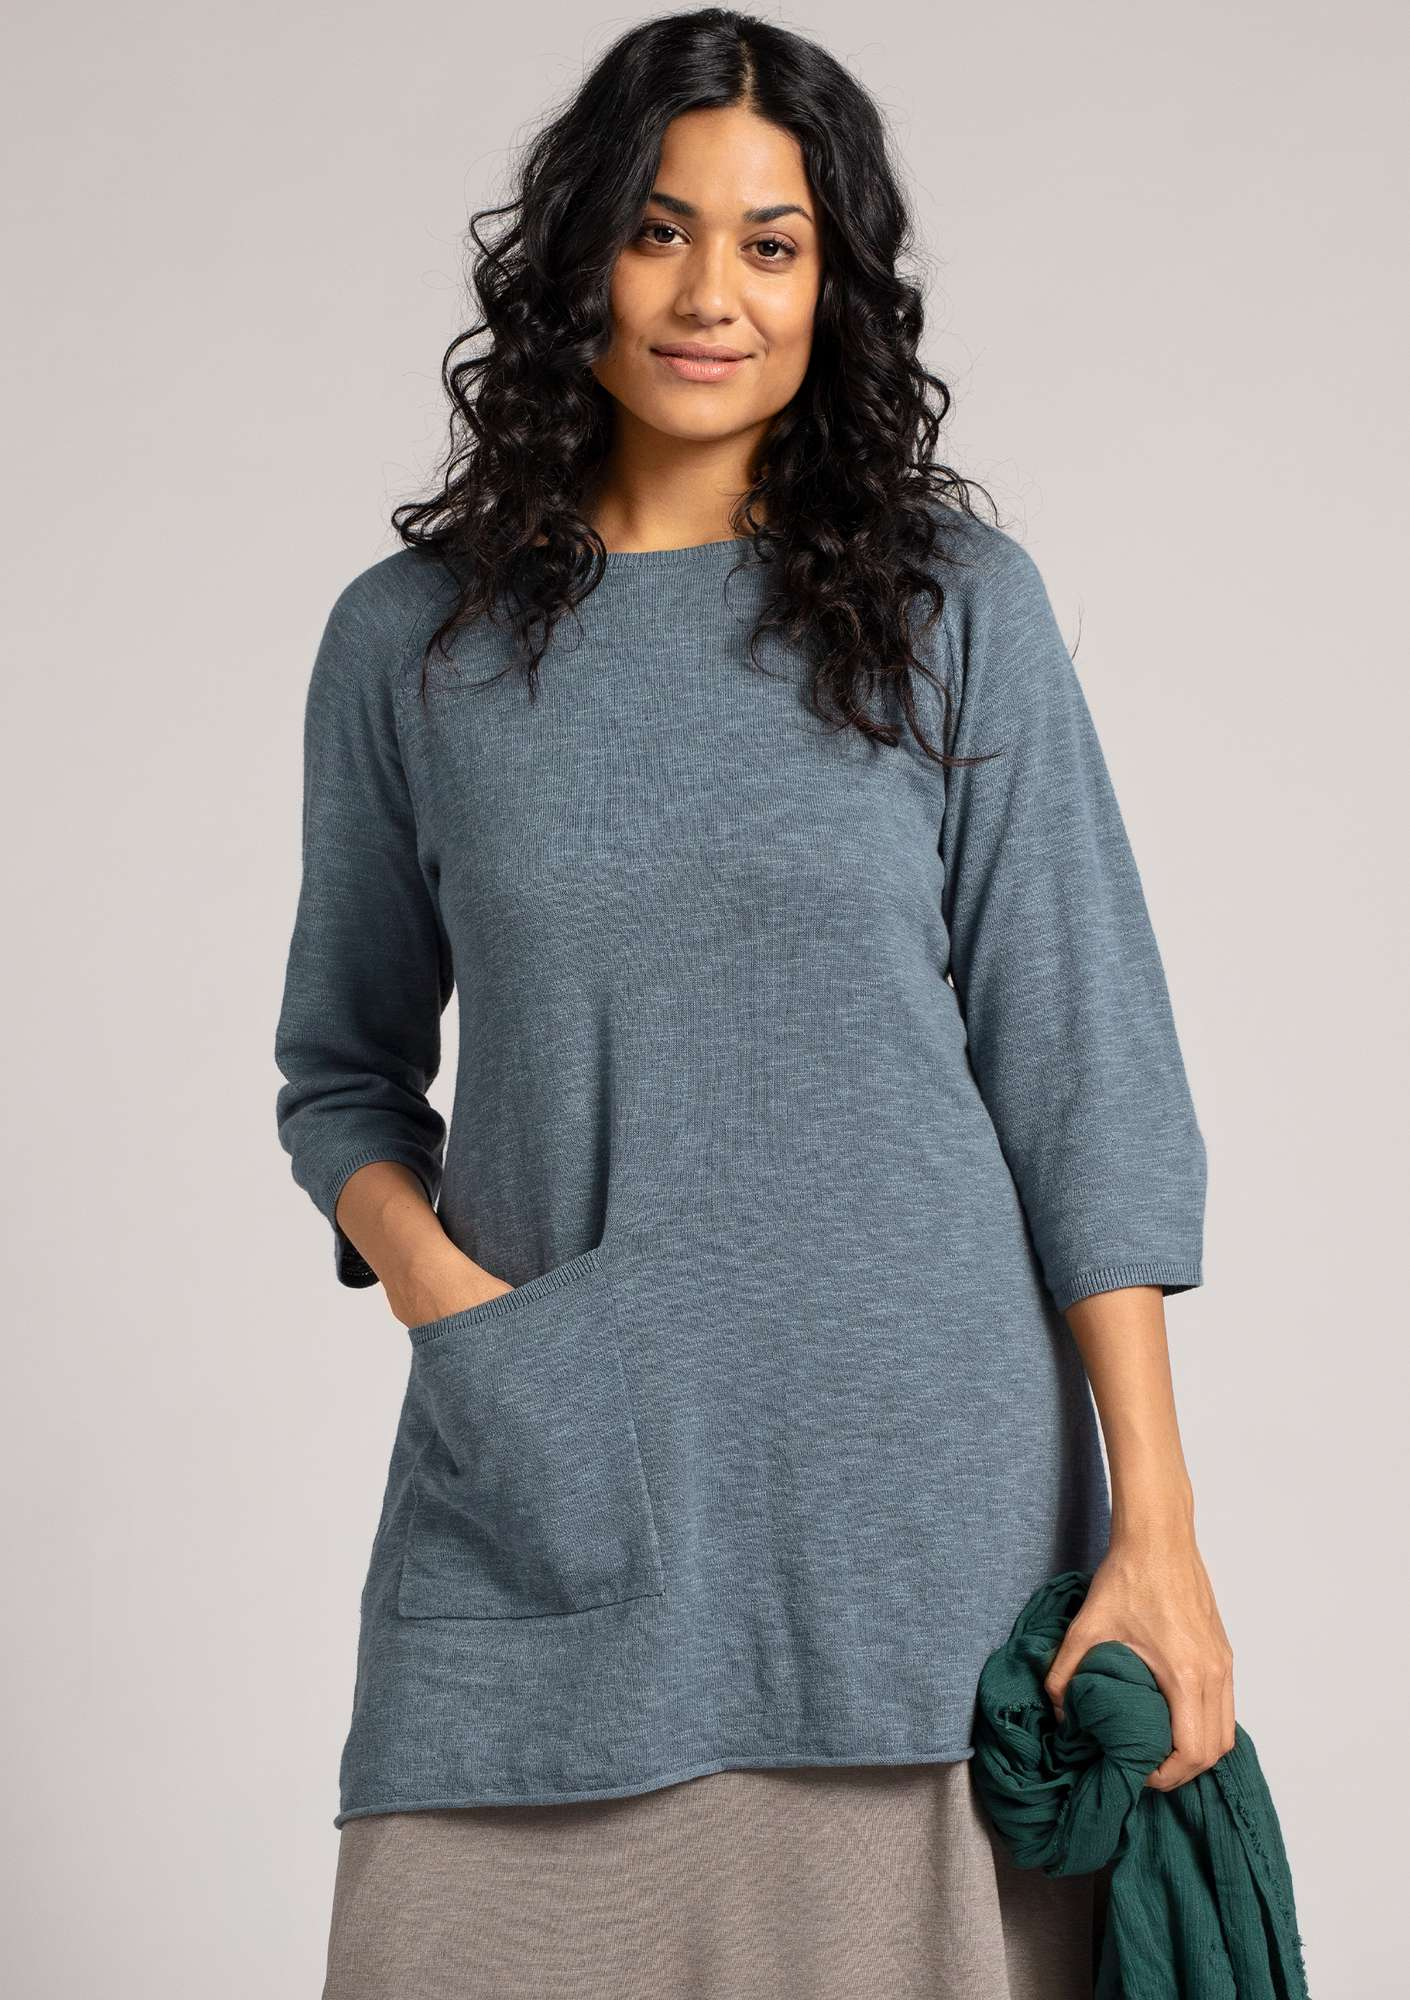 Tunic in organic cotton/linen agave